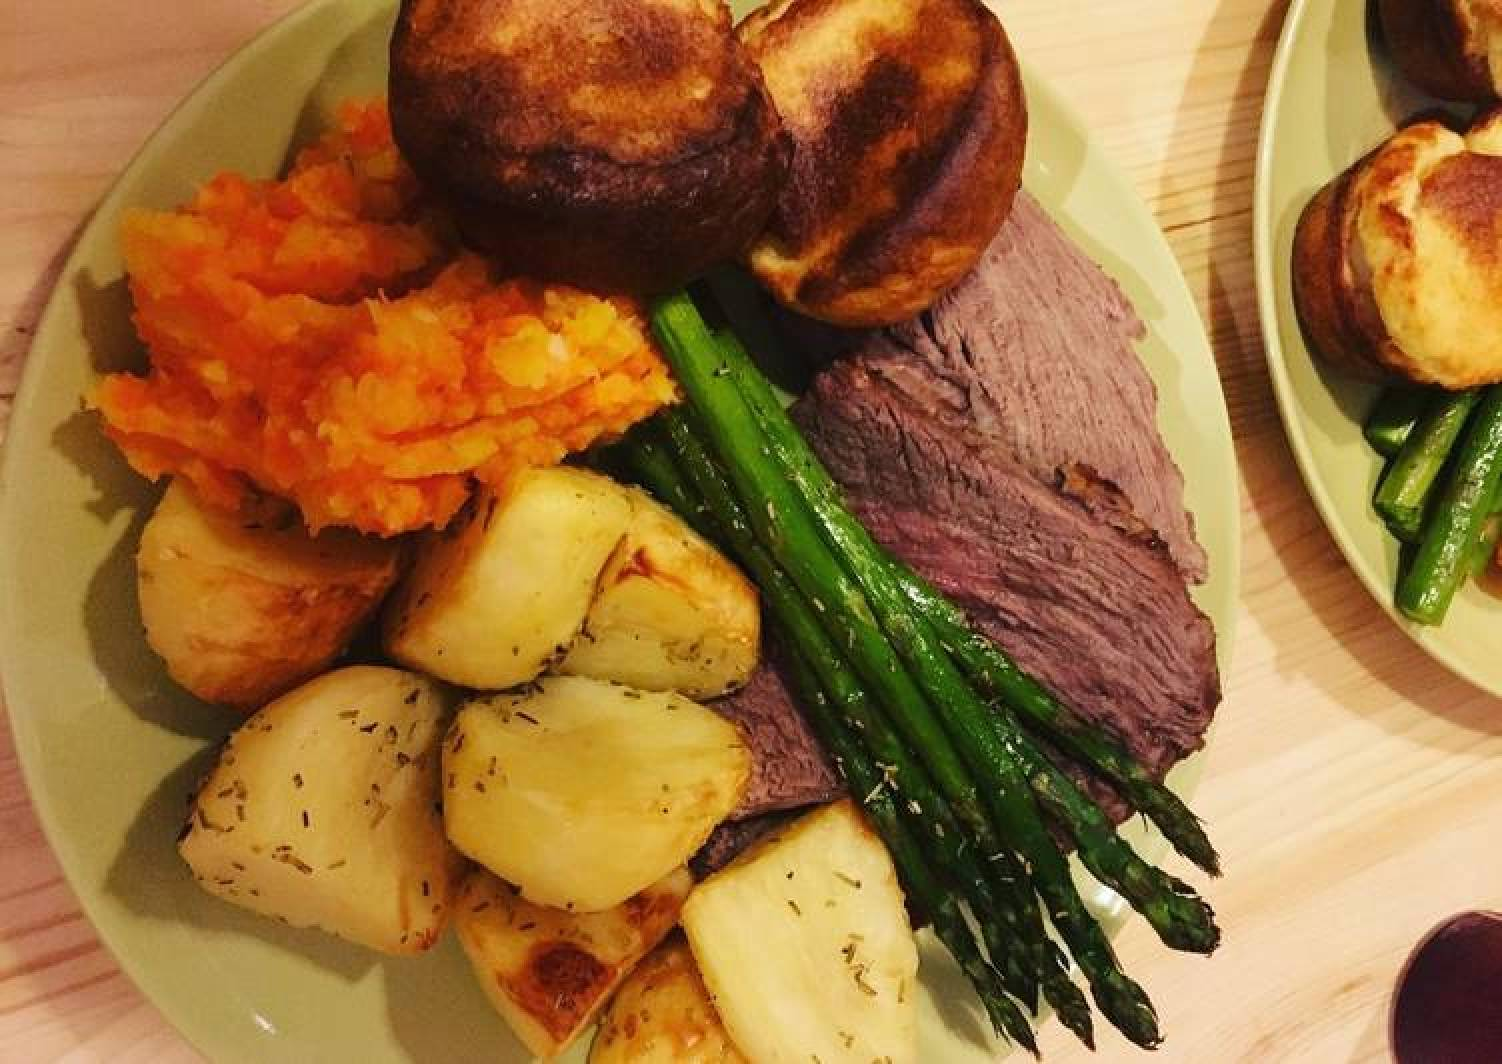 Sunday Roast (Beef) with all the trimmings